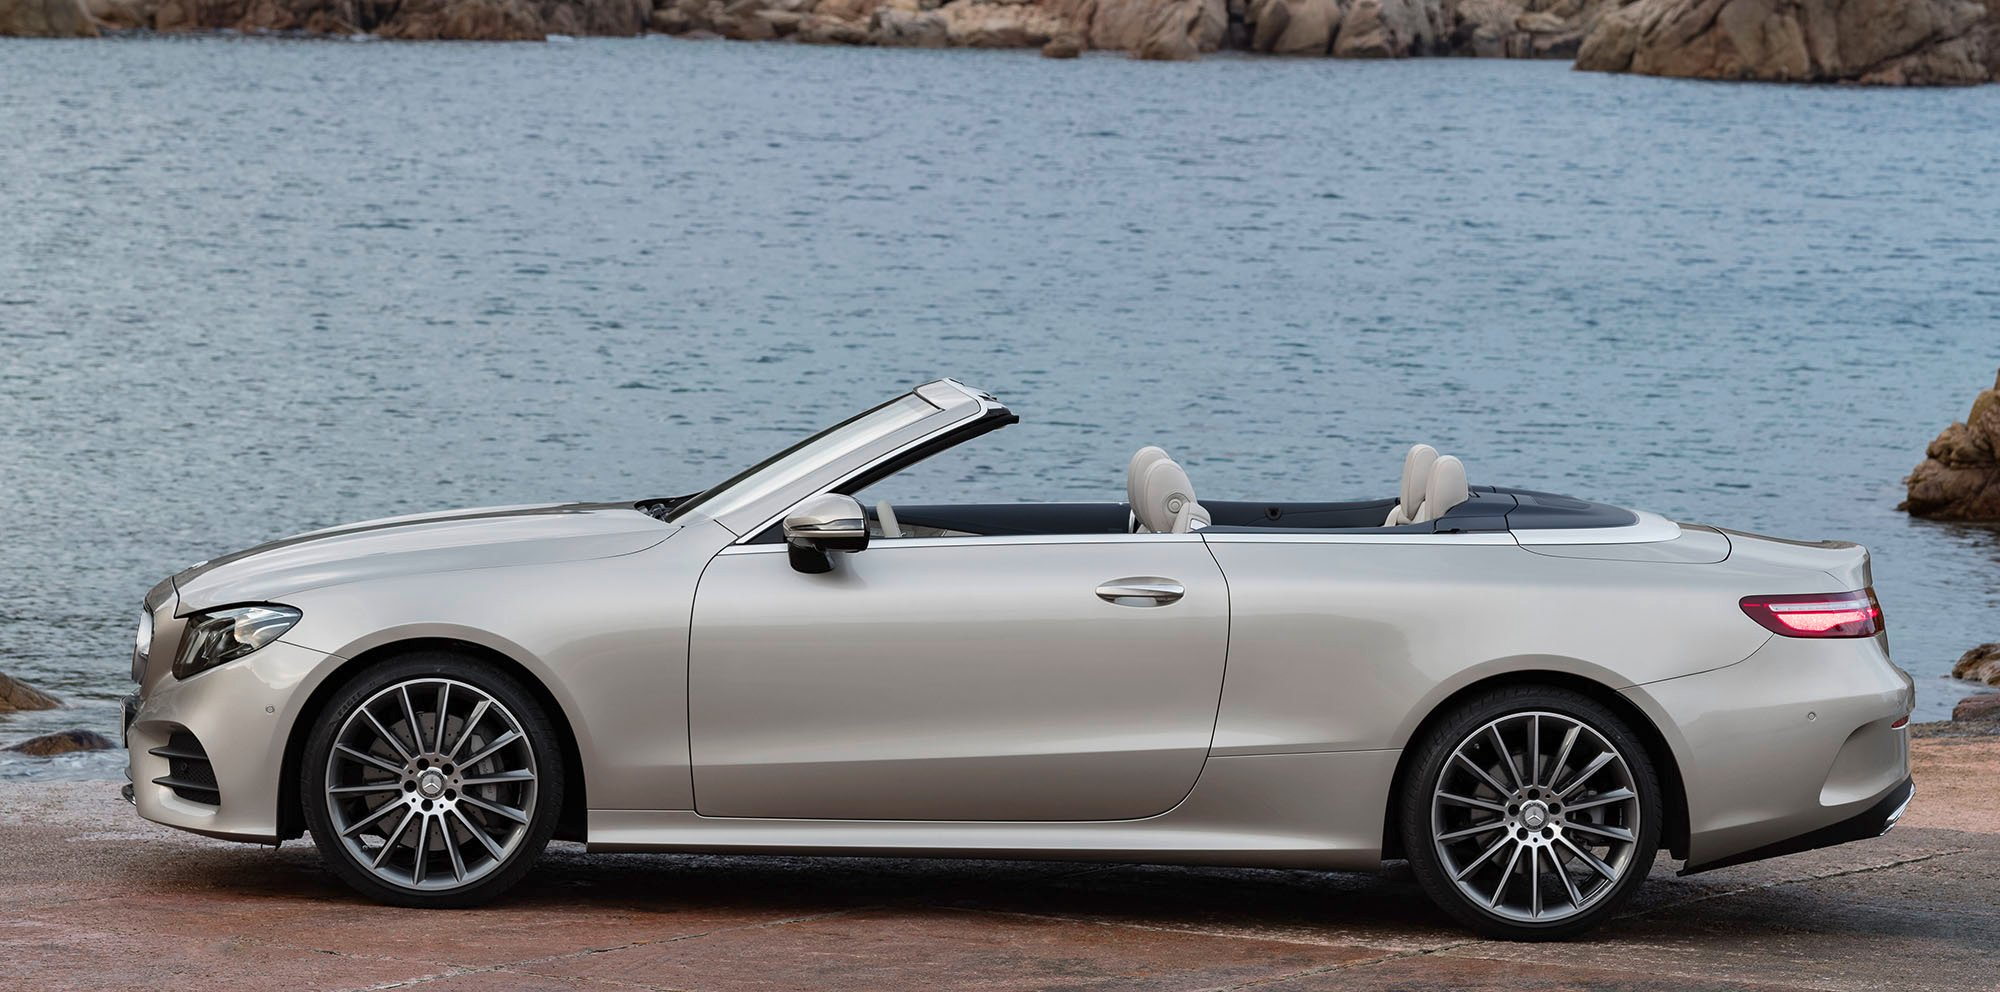 2017 mercedes benz e class cabriolet revealed photos 1 of 19. Black Bedroom Furniture Sets. Home Design Ideas